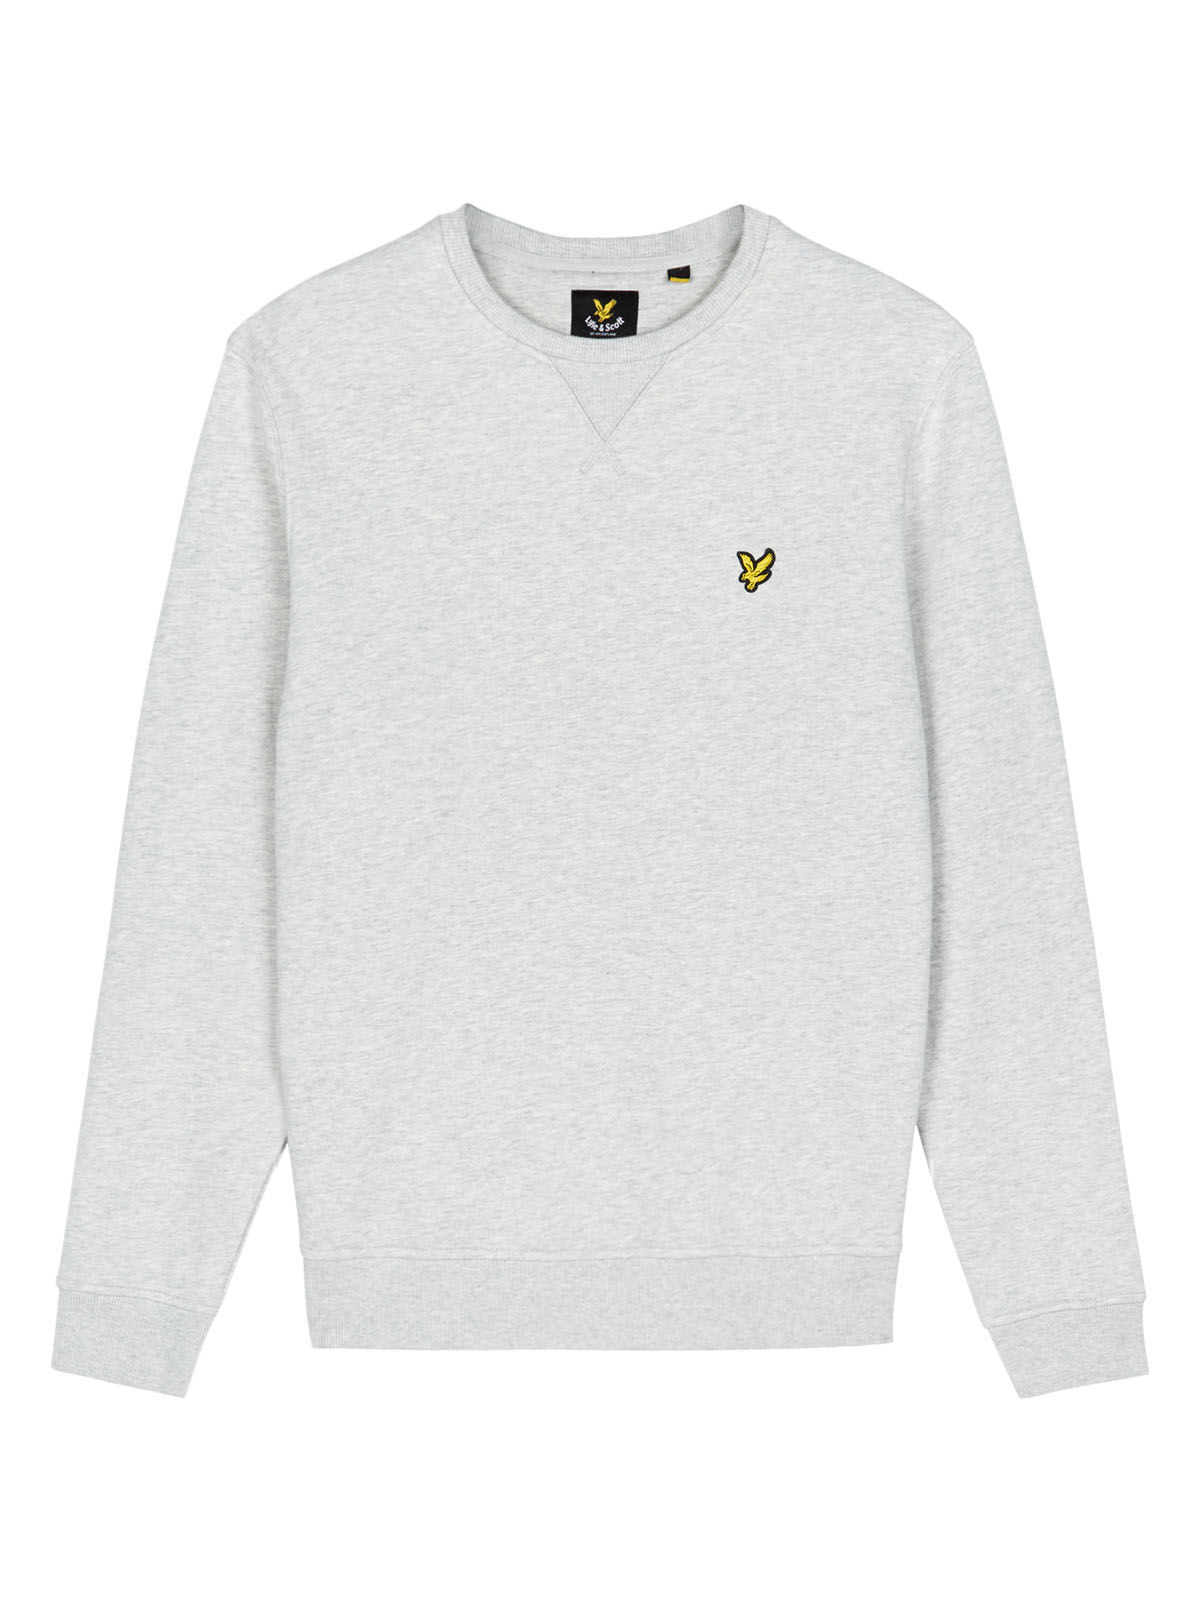 Lyle and Scott Light Grey Marl Crew Neck Sweatshirt